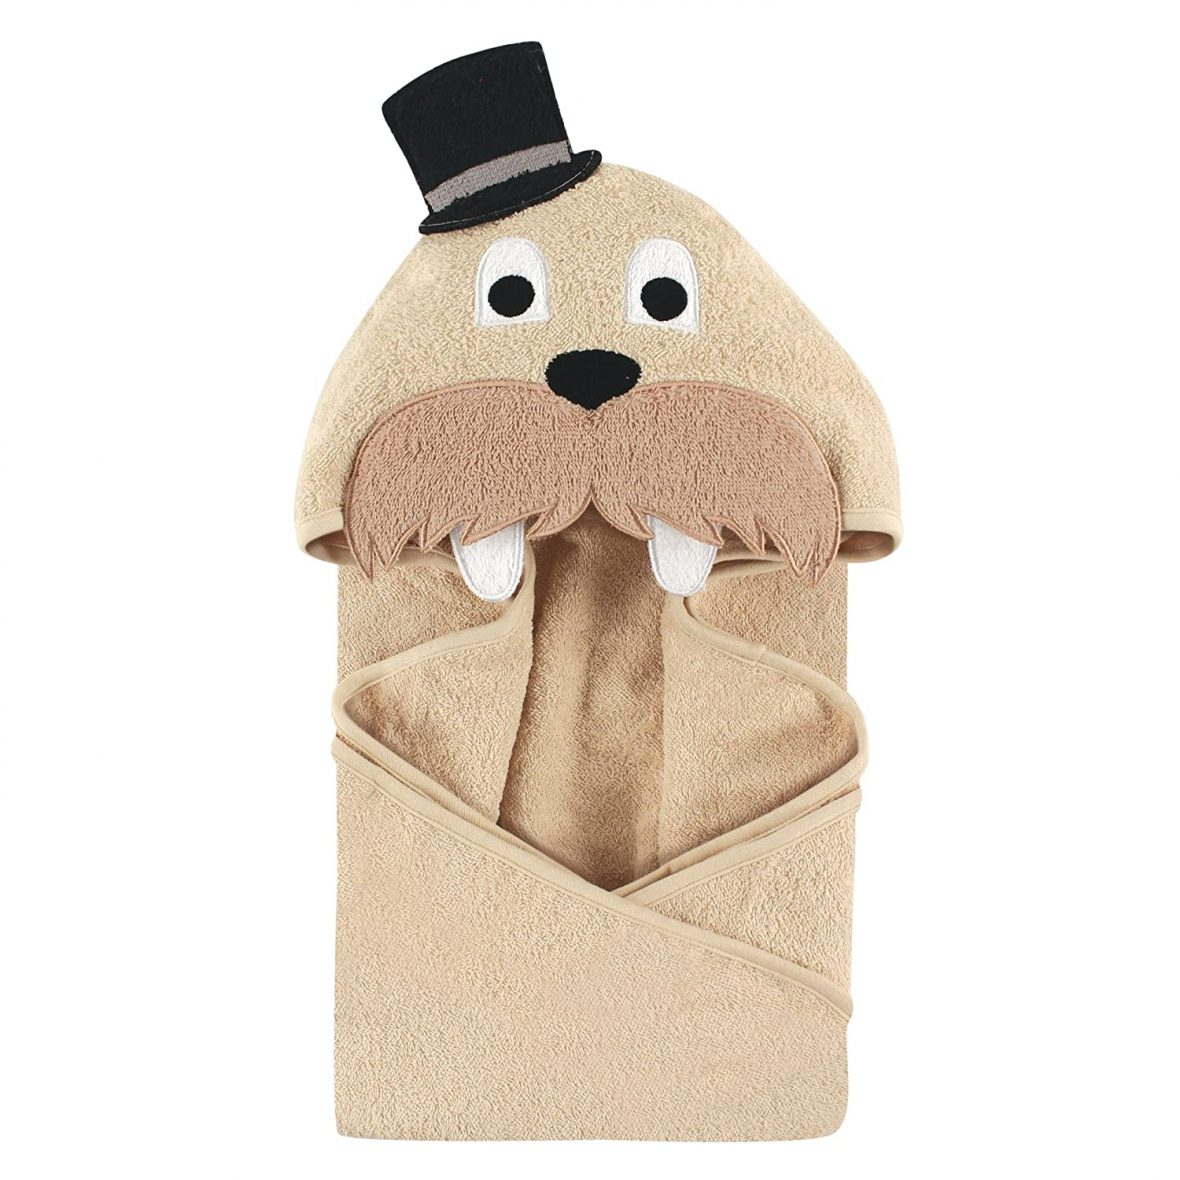 Luvable Friends Cotton Animal Face Hooded Towel, Classy Walrus